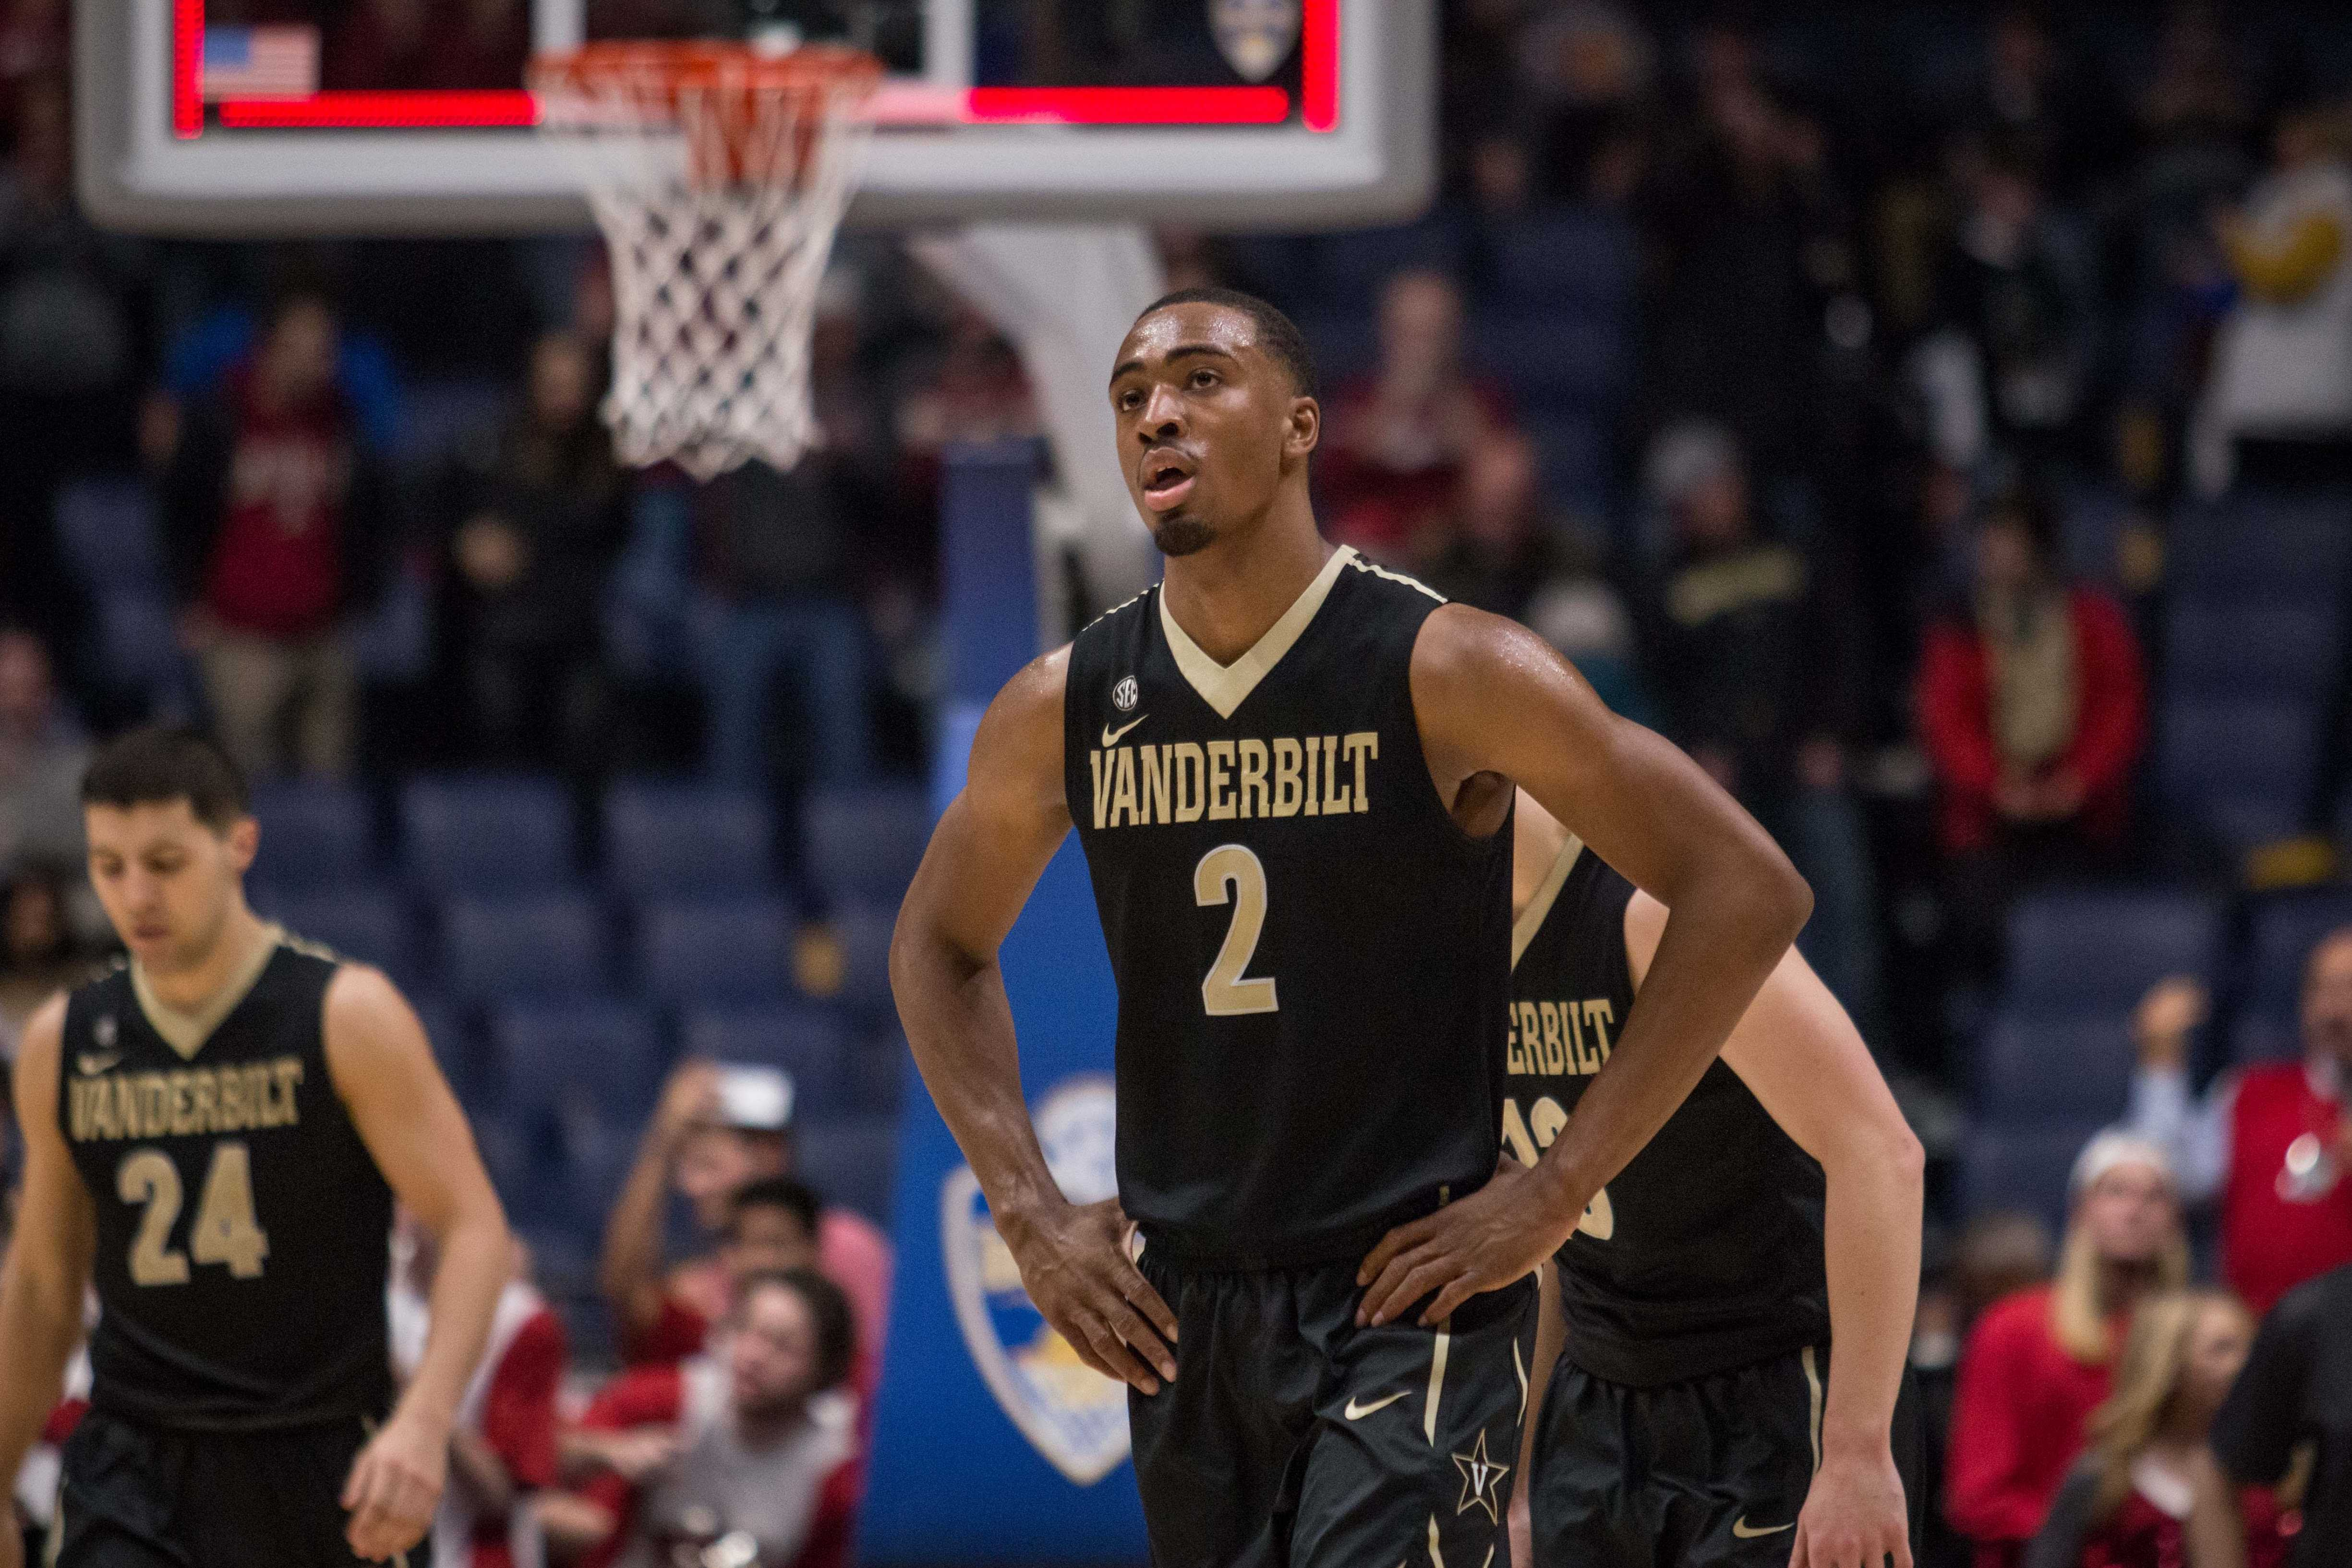 Joe Toye (2) and Vanderbilt as the buzzer sounded on the Commodores' SEC tournament semifinal defeat to Arkansas on March 11, 2017 at Bridgestone Arena in Nashville.